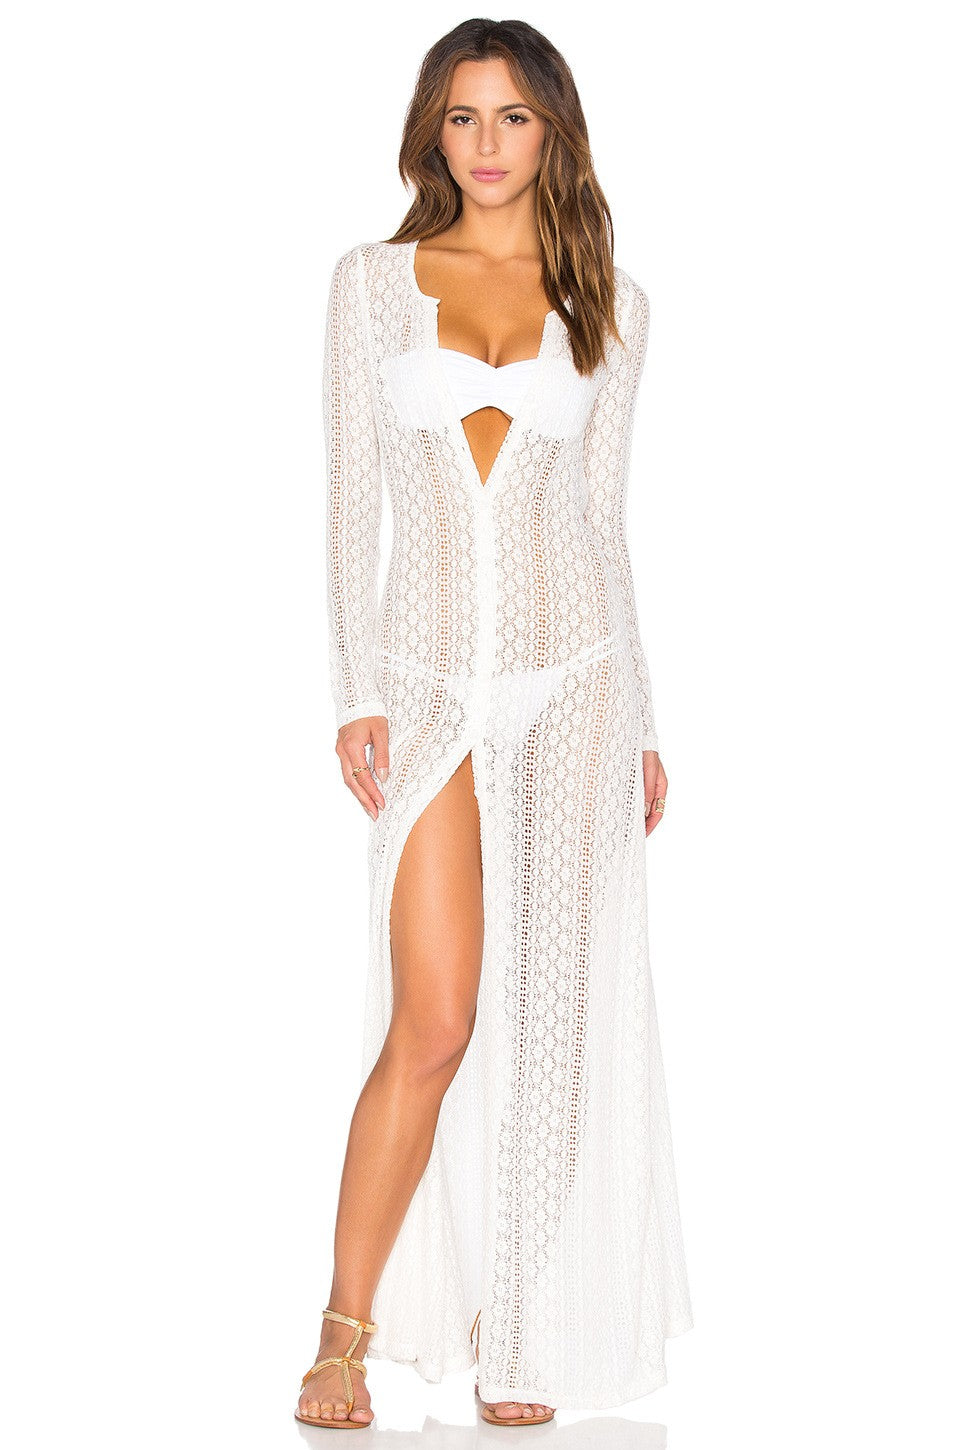 Lace Long Beach Cover Up